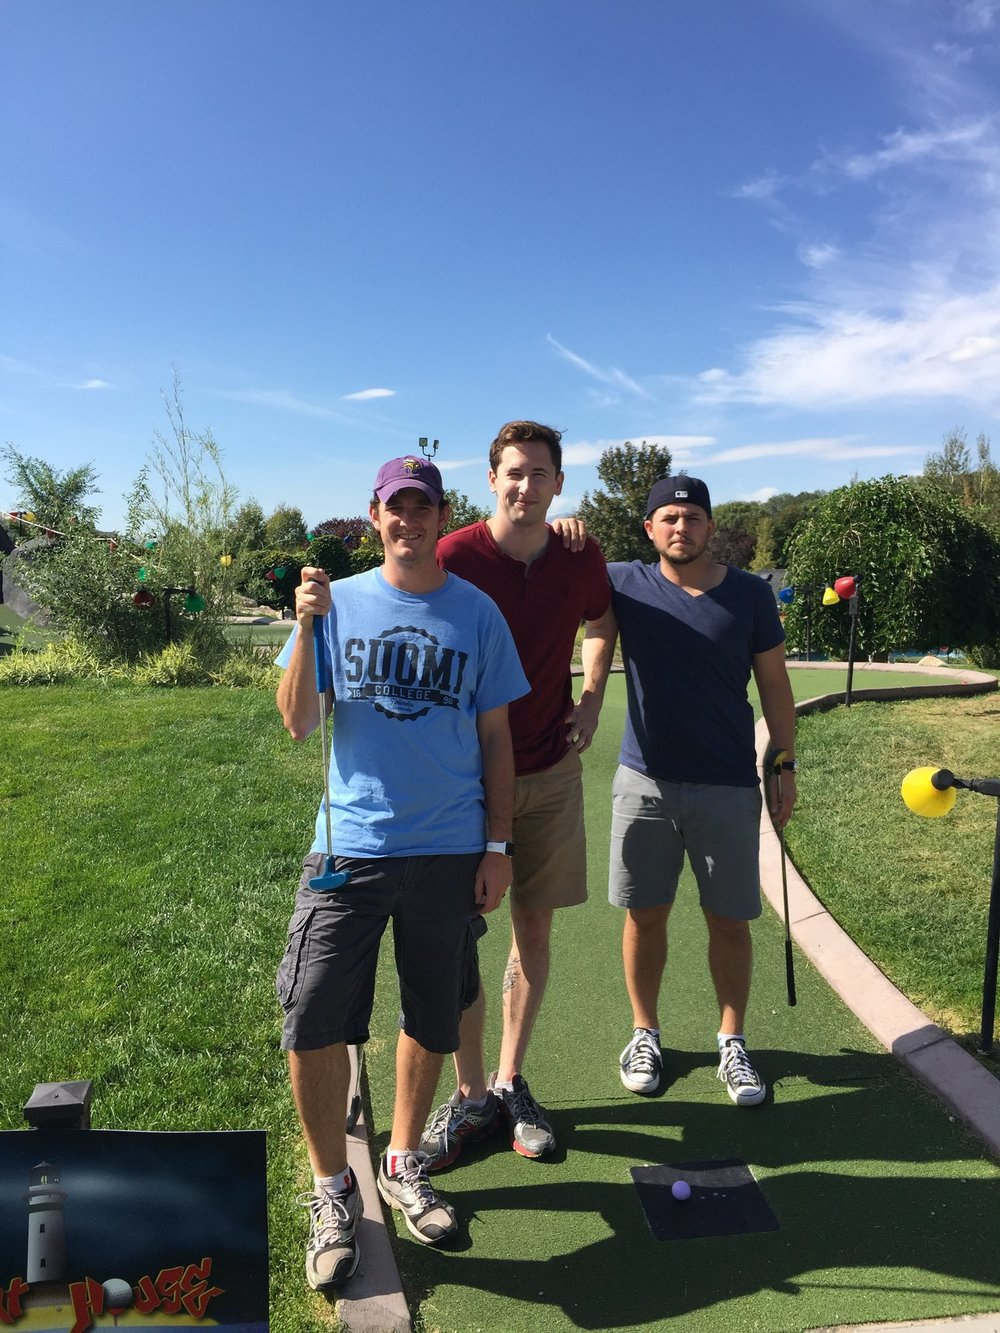 SALT LAKE CITY, UTAH -2015  The first trip in which all three off us flew in was not a state that will be soon forgotten. From the beautiful peaks in Park City to the unique small mountain towns along the way, it was a grand memory for all involved.  Winner: Tony.